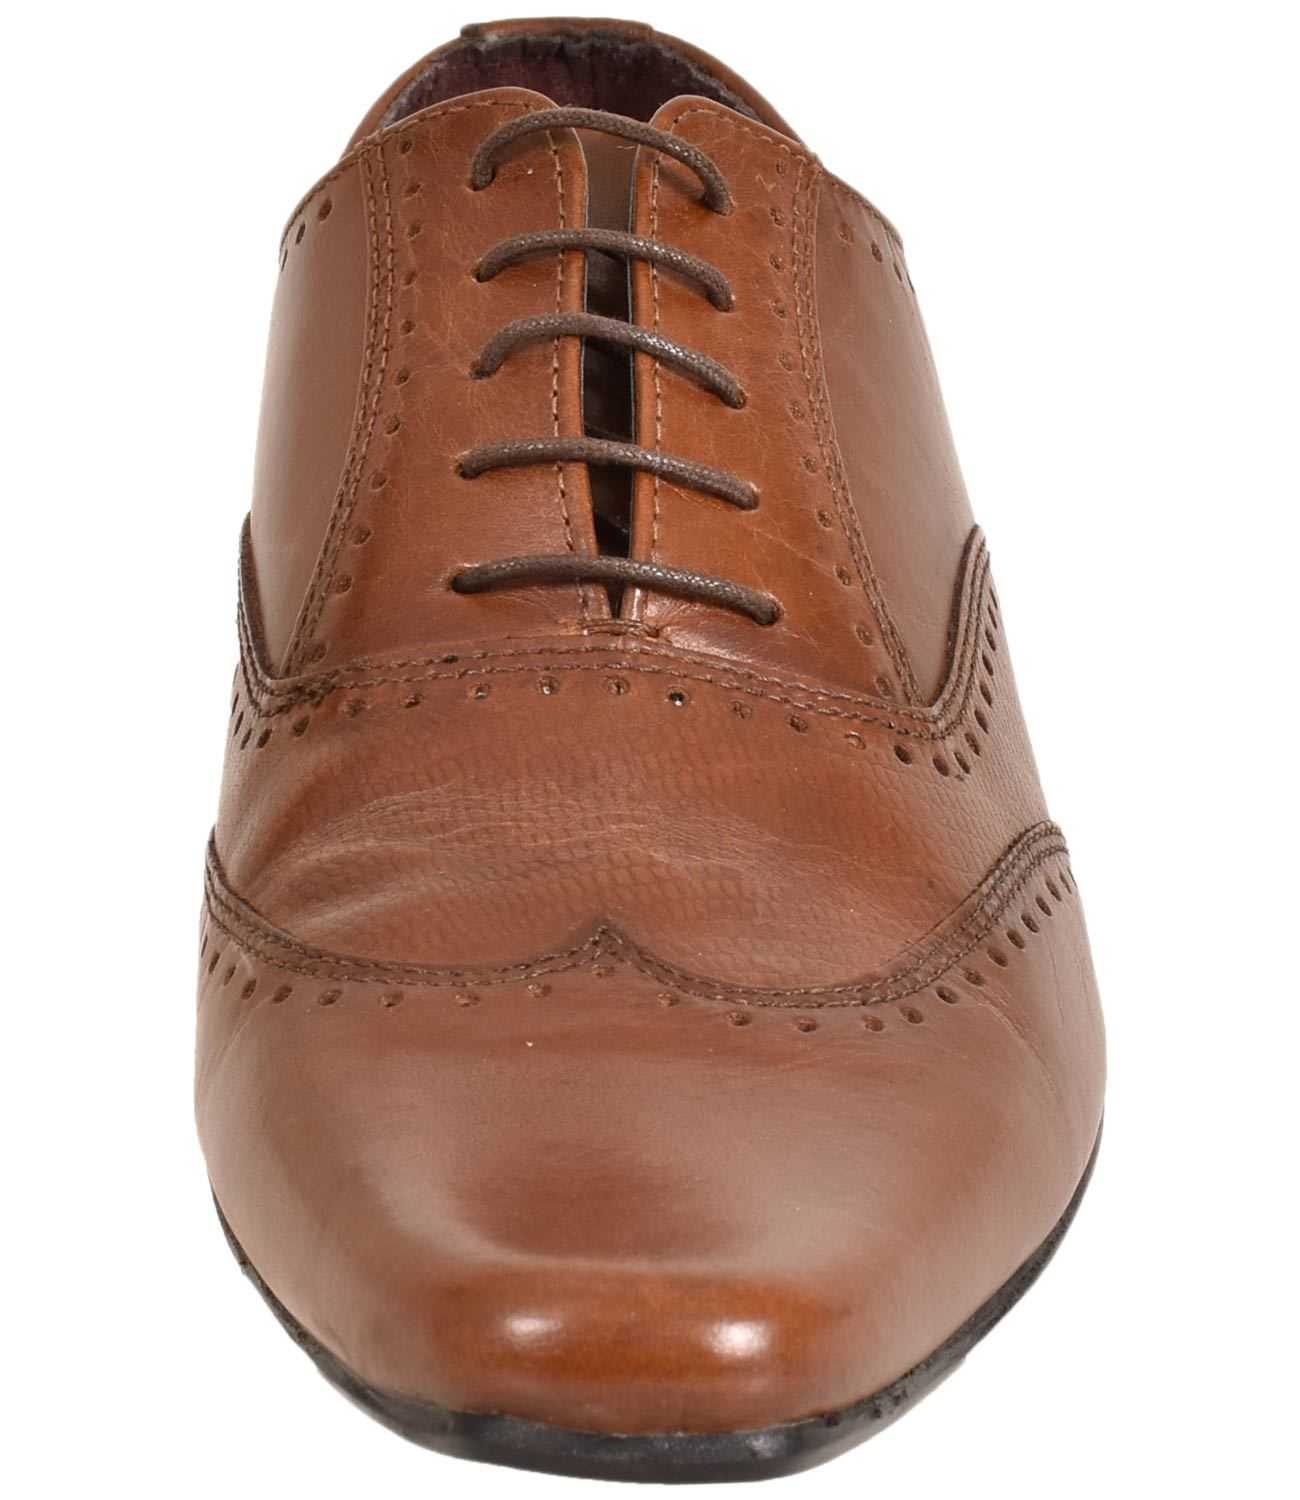 Mens-UK-Style-Leather-Lining-Formal-Office-Wedding-Smart-Work-Brogue-Shoes thumbnail 36